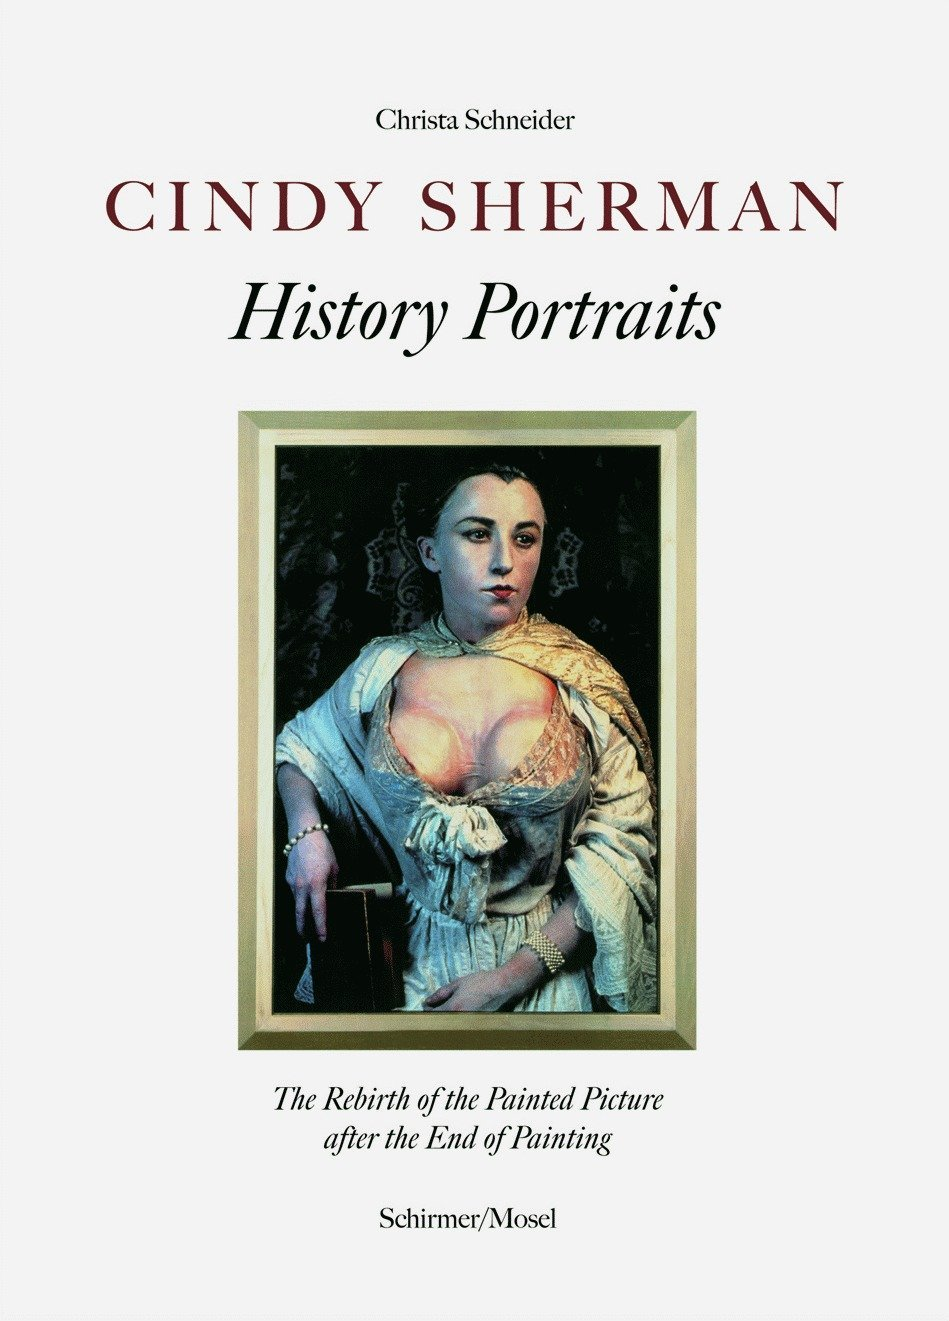 Cindy Sherman: History Portraits: The Rebirth of the Painted Picutre after the End of Painting by Schirmer Mosel